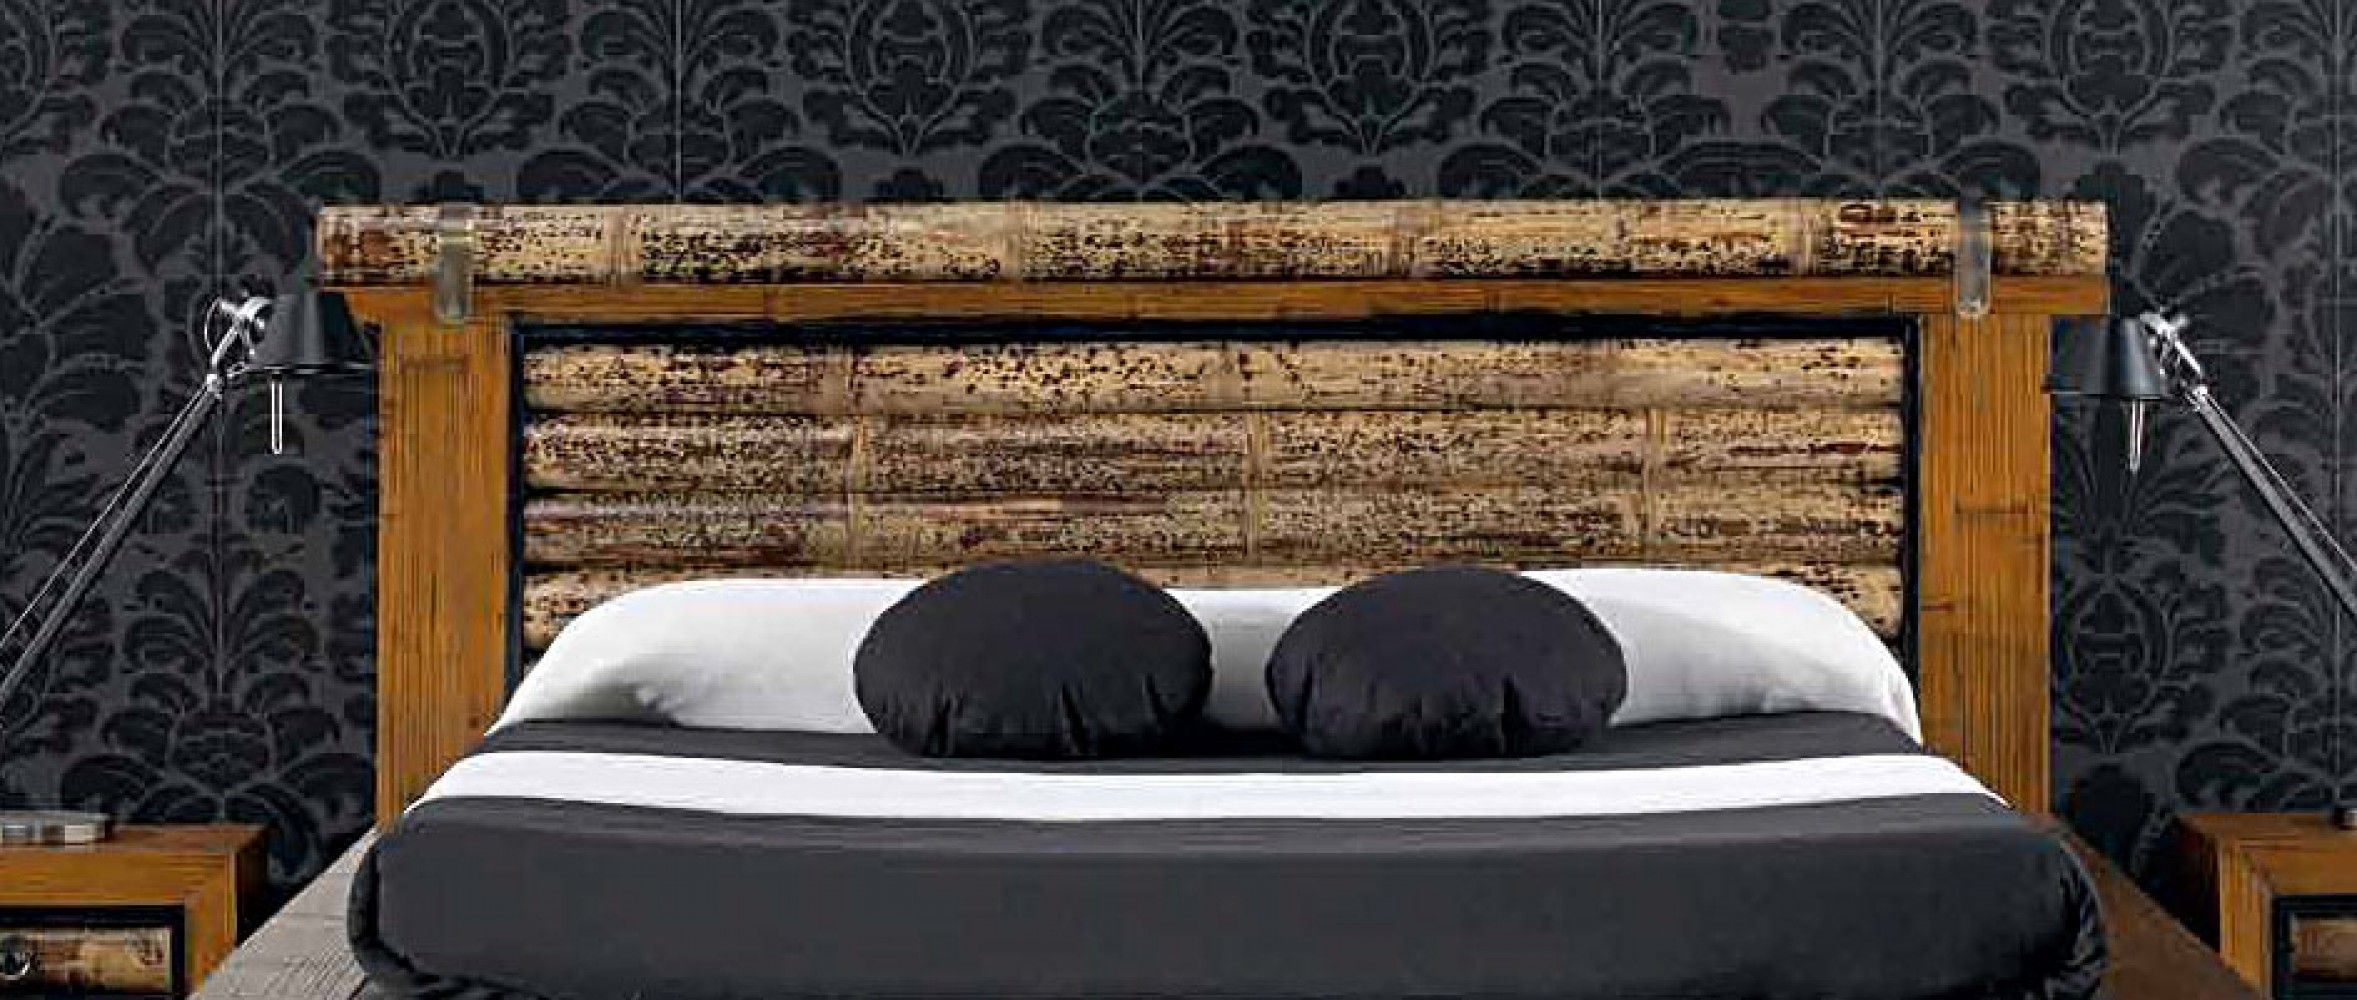 t te de lit bambou sha 160 cm tete de lit pinterest. Black Bedroom Furniture Sets. Home Design Ideas